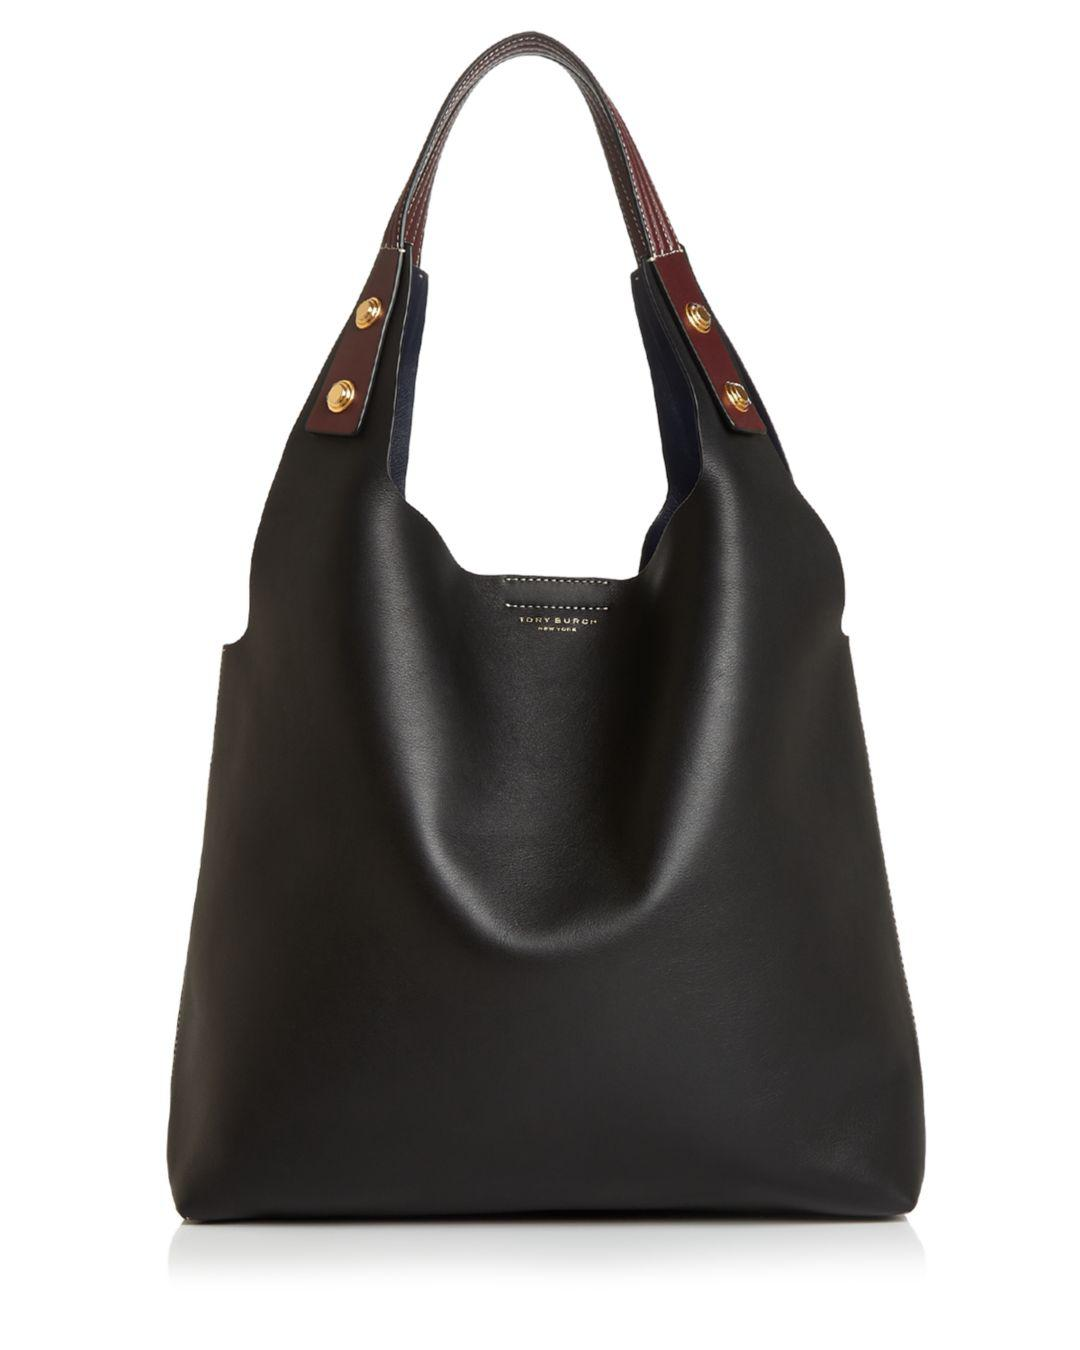 6fe8a973f359 Tory Burch Rory Large Leather Tote in Black - Lyst